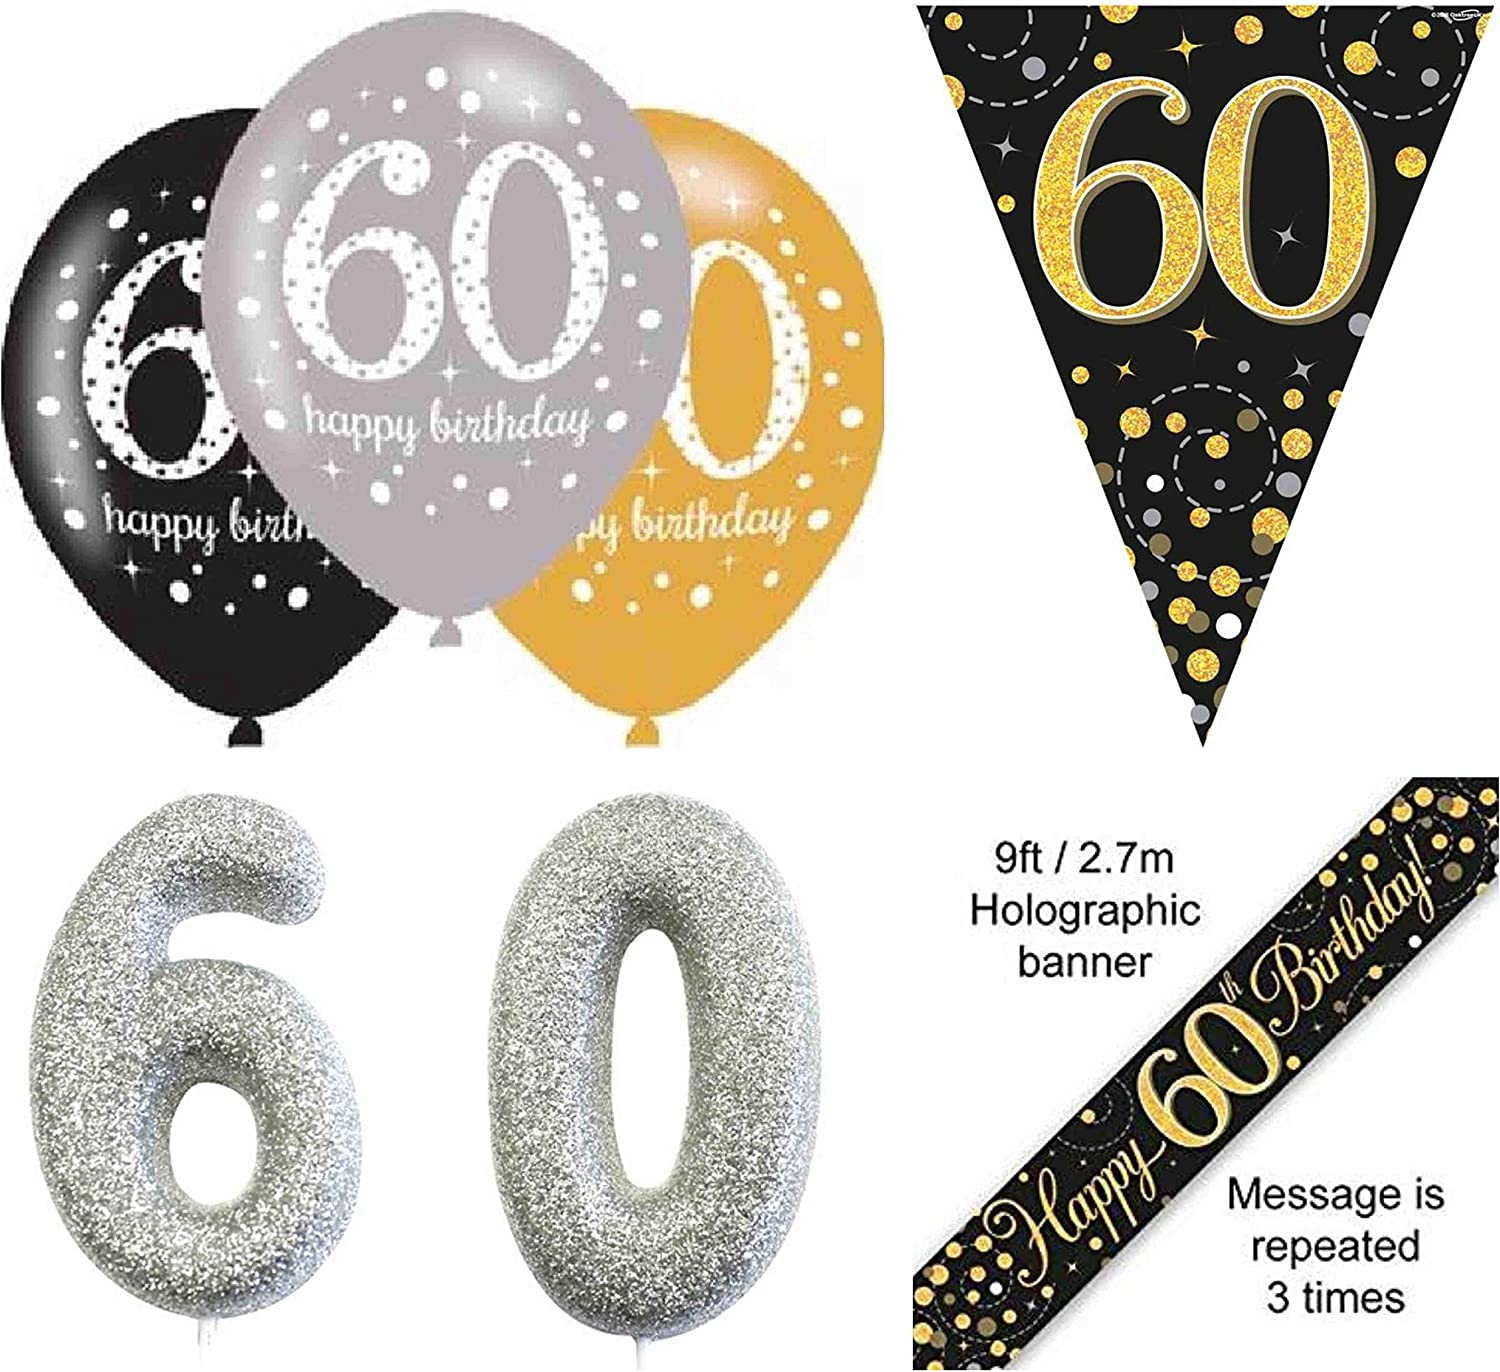 60TH BIRTHDAY BUNTING SIXTY PARTY BANNER BLACK AND SILVER